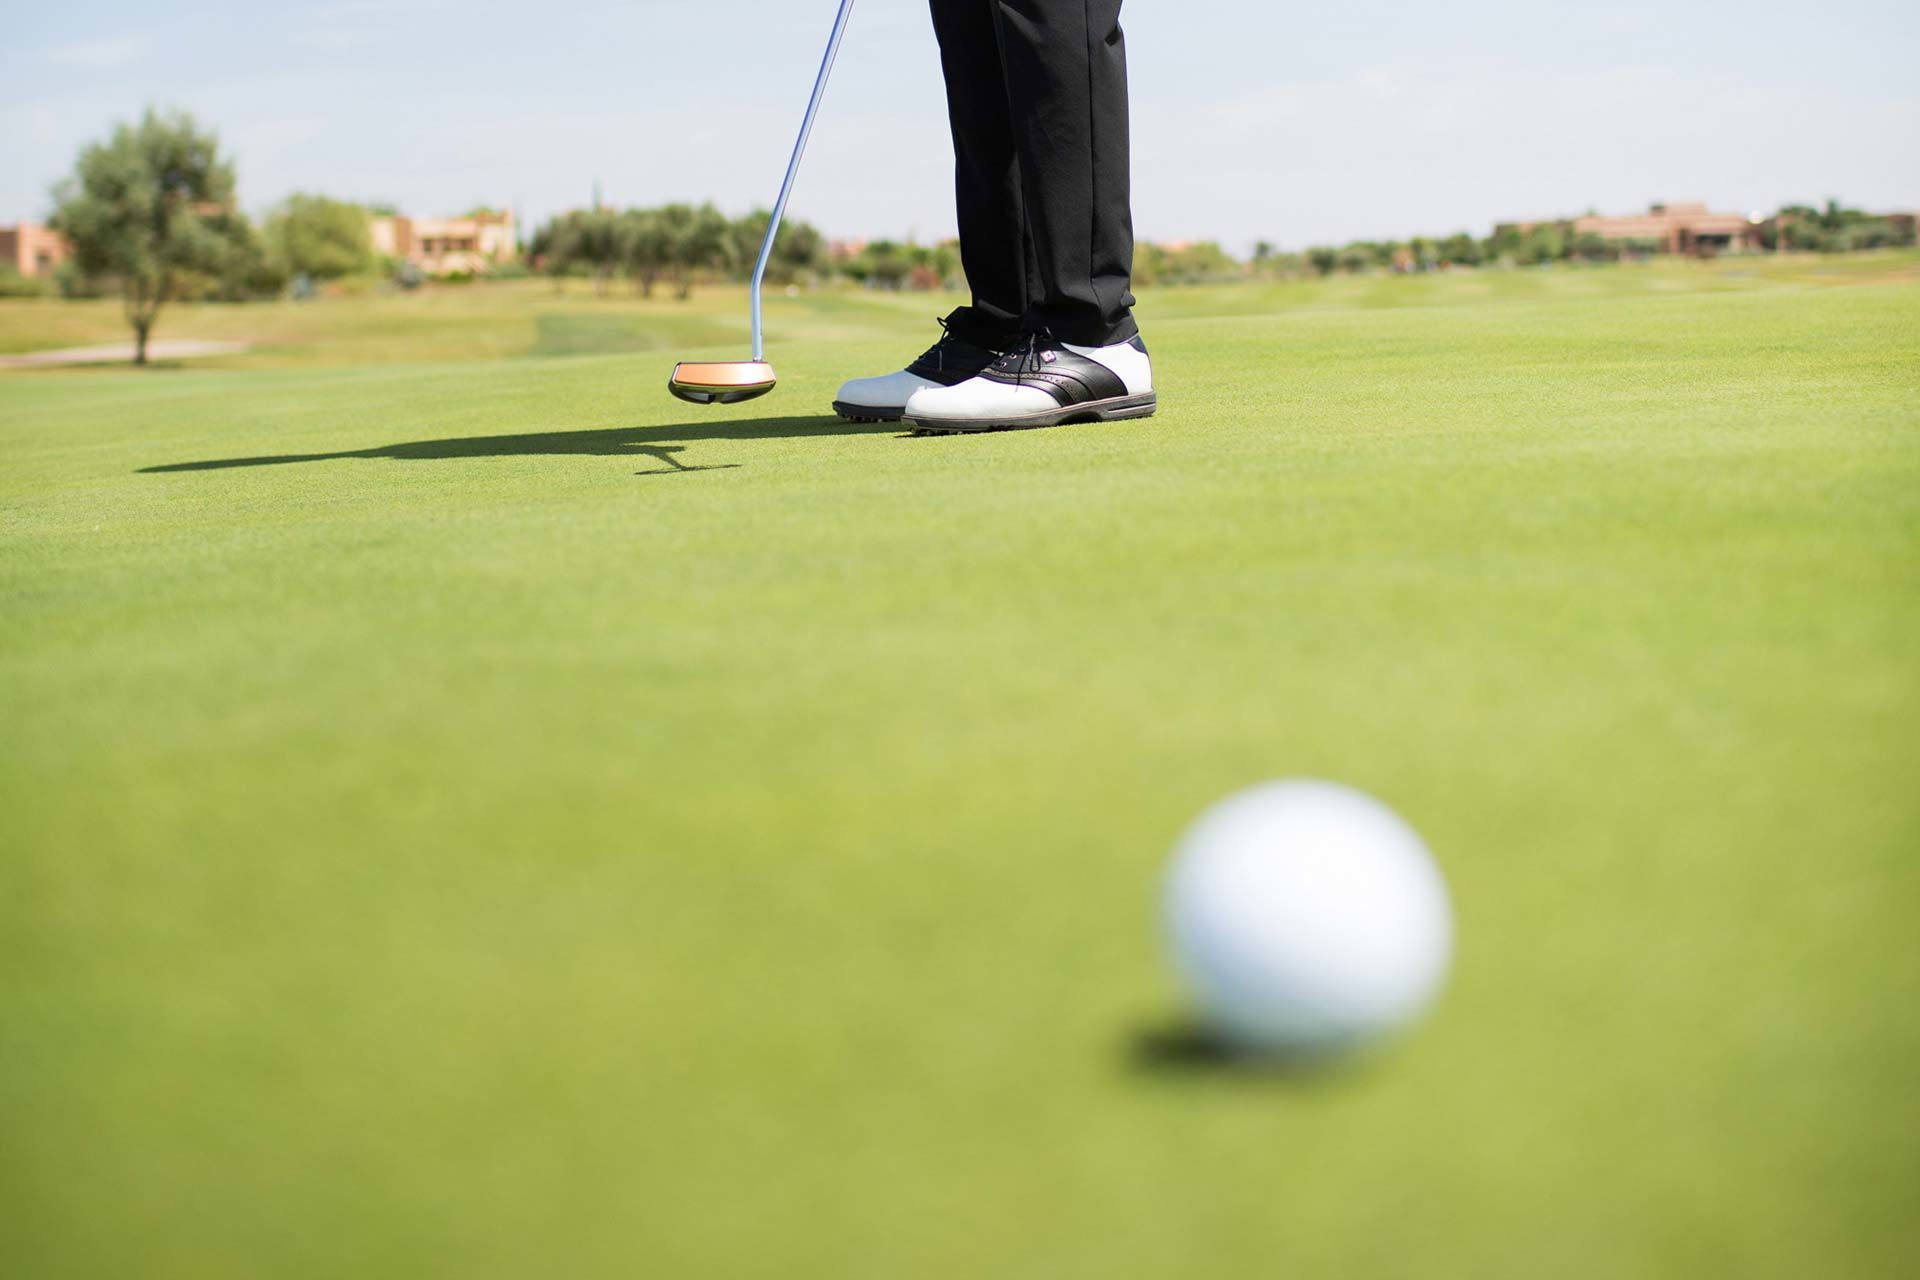 heure coaching | Enphase Golf